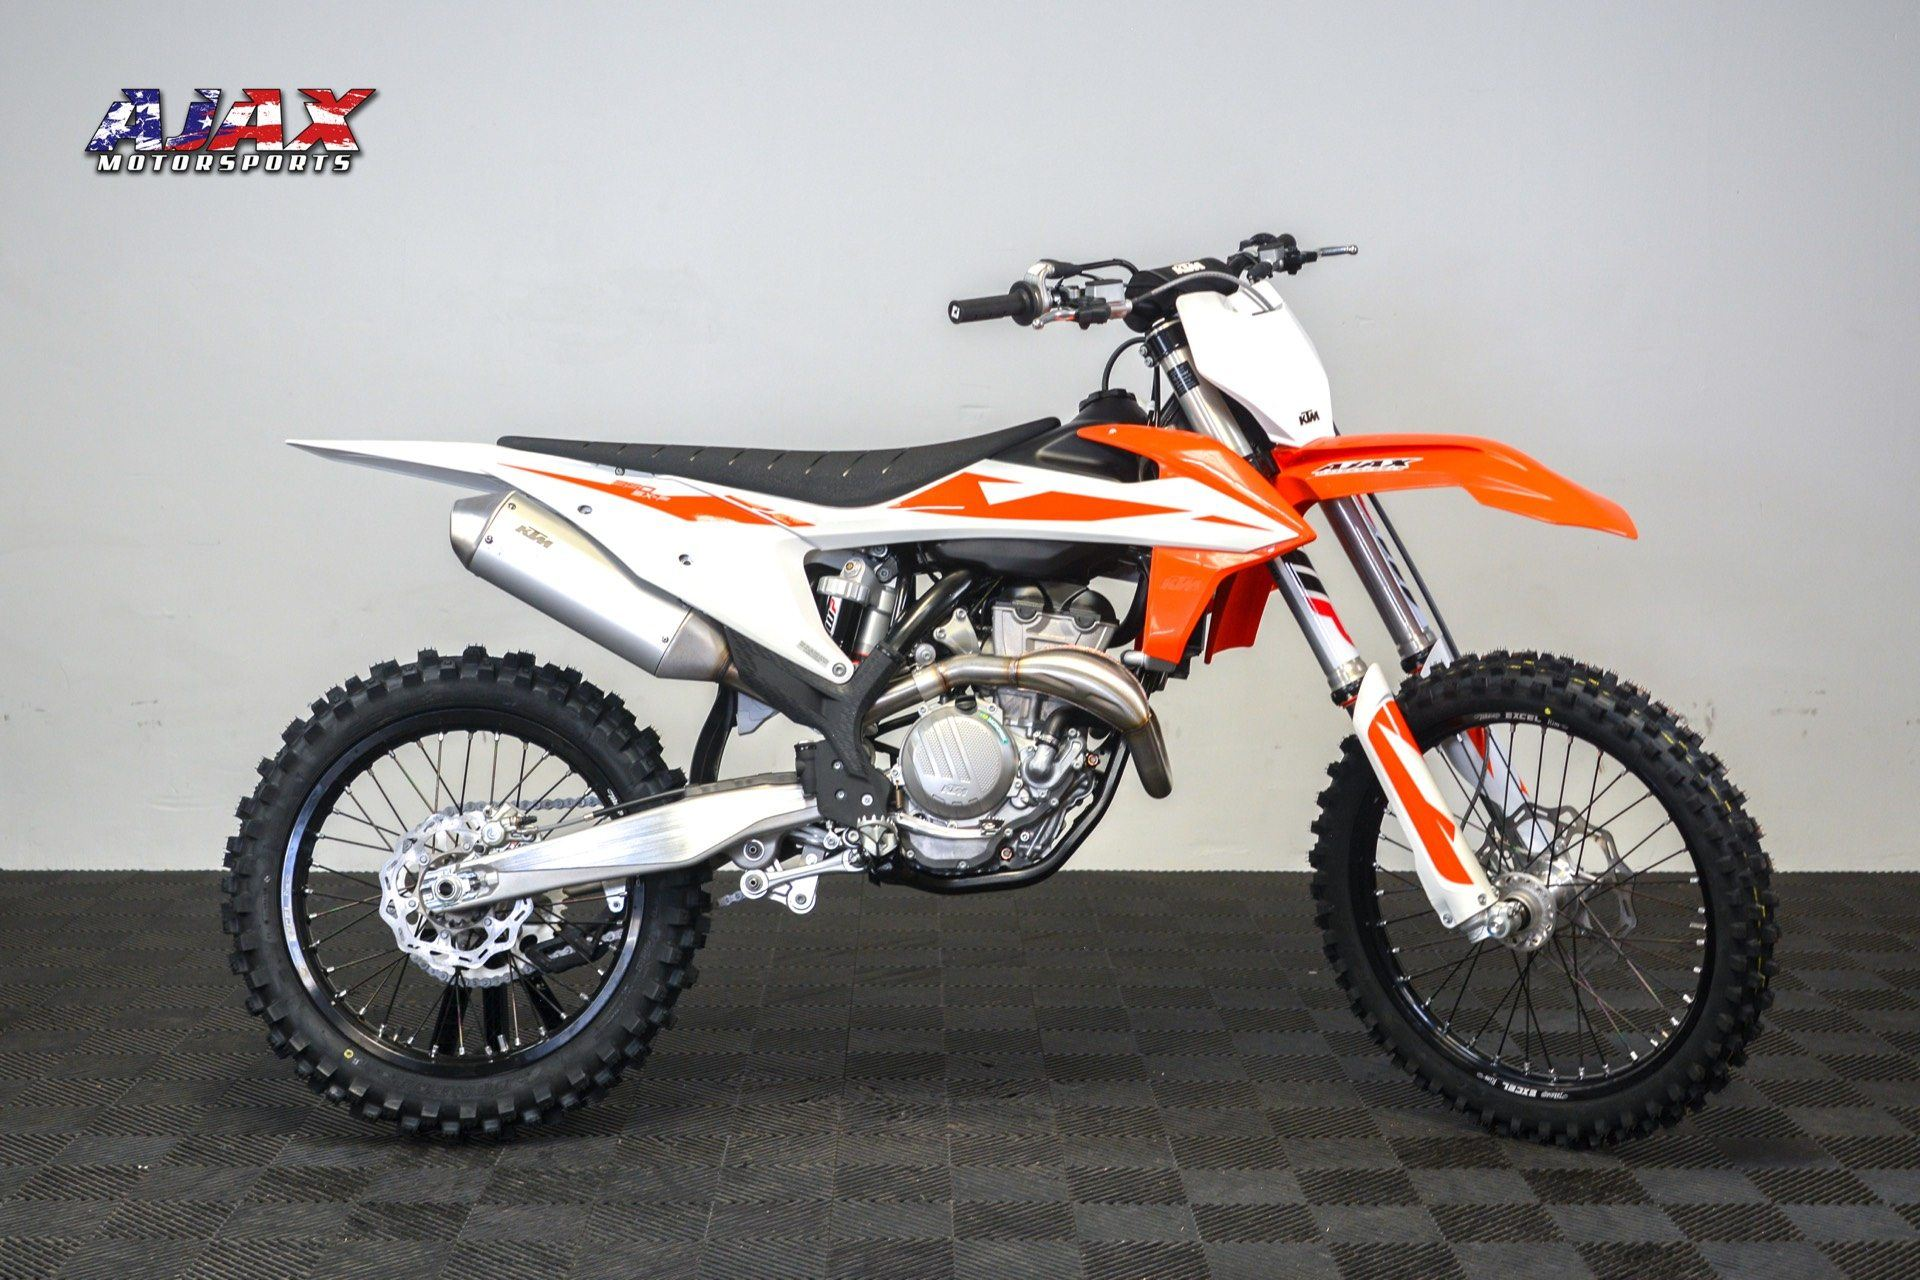 2019 KTM 350 SX-F in Oklahoma City, Oklahoma - Photo 1